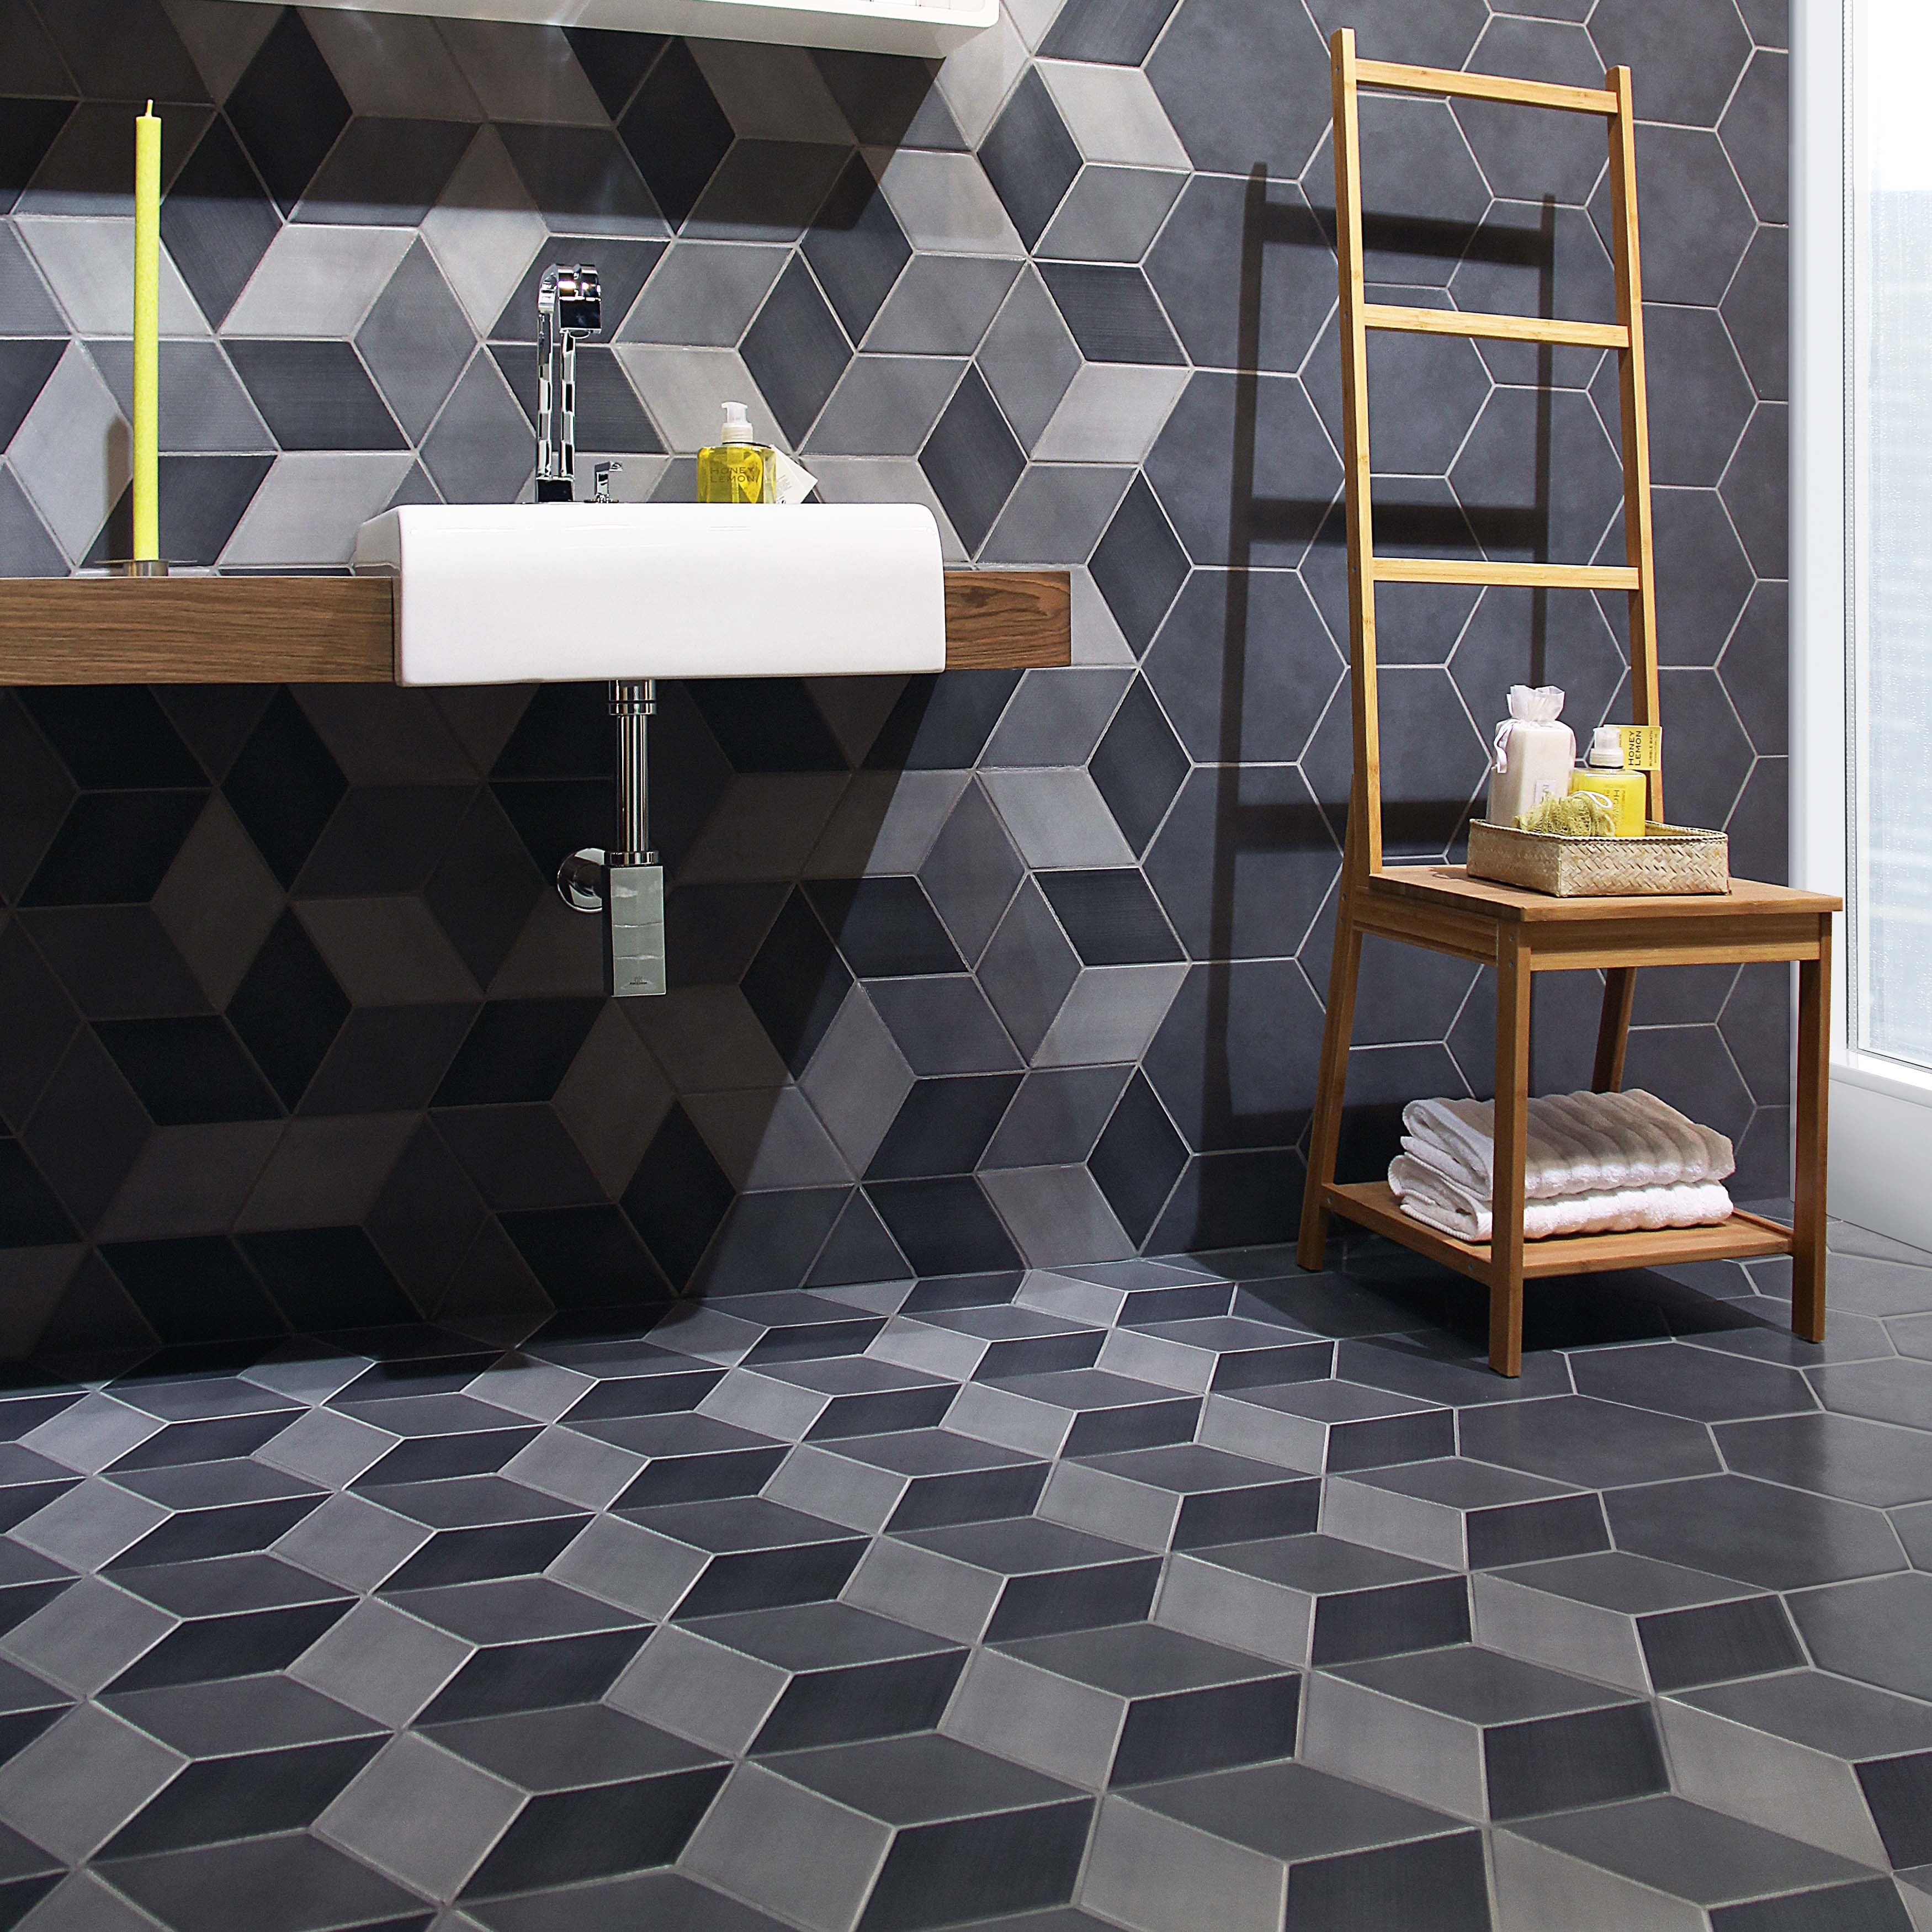 Somertile 875x875 inch concret cubic vigeland porcelain floor somertile 875x875 inch concret cubic vigeland porcelain floor and wall tile case of 15 free shipping today overstock 16398657 dailygadgetfo Gallery